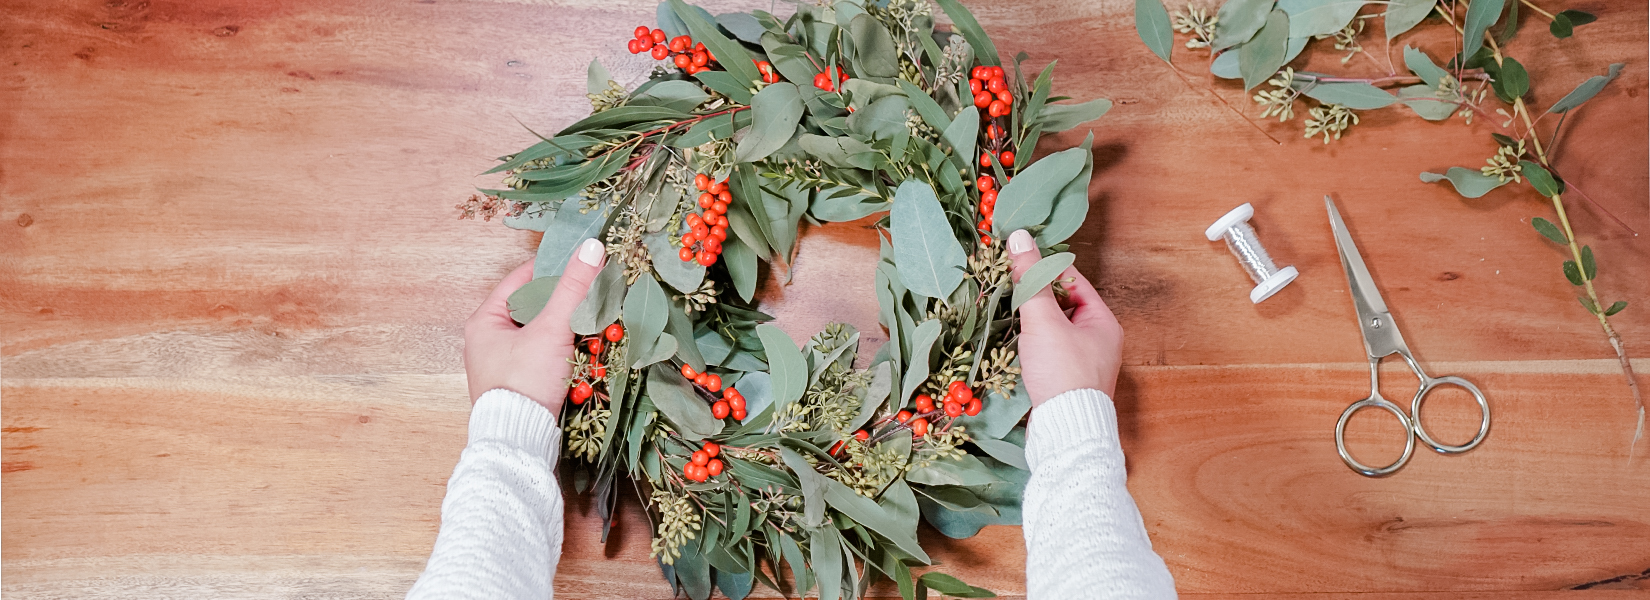 DIY For The Holidays: How To Make A Modern Christmas Wreath